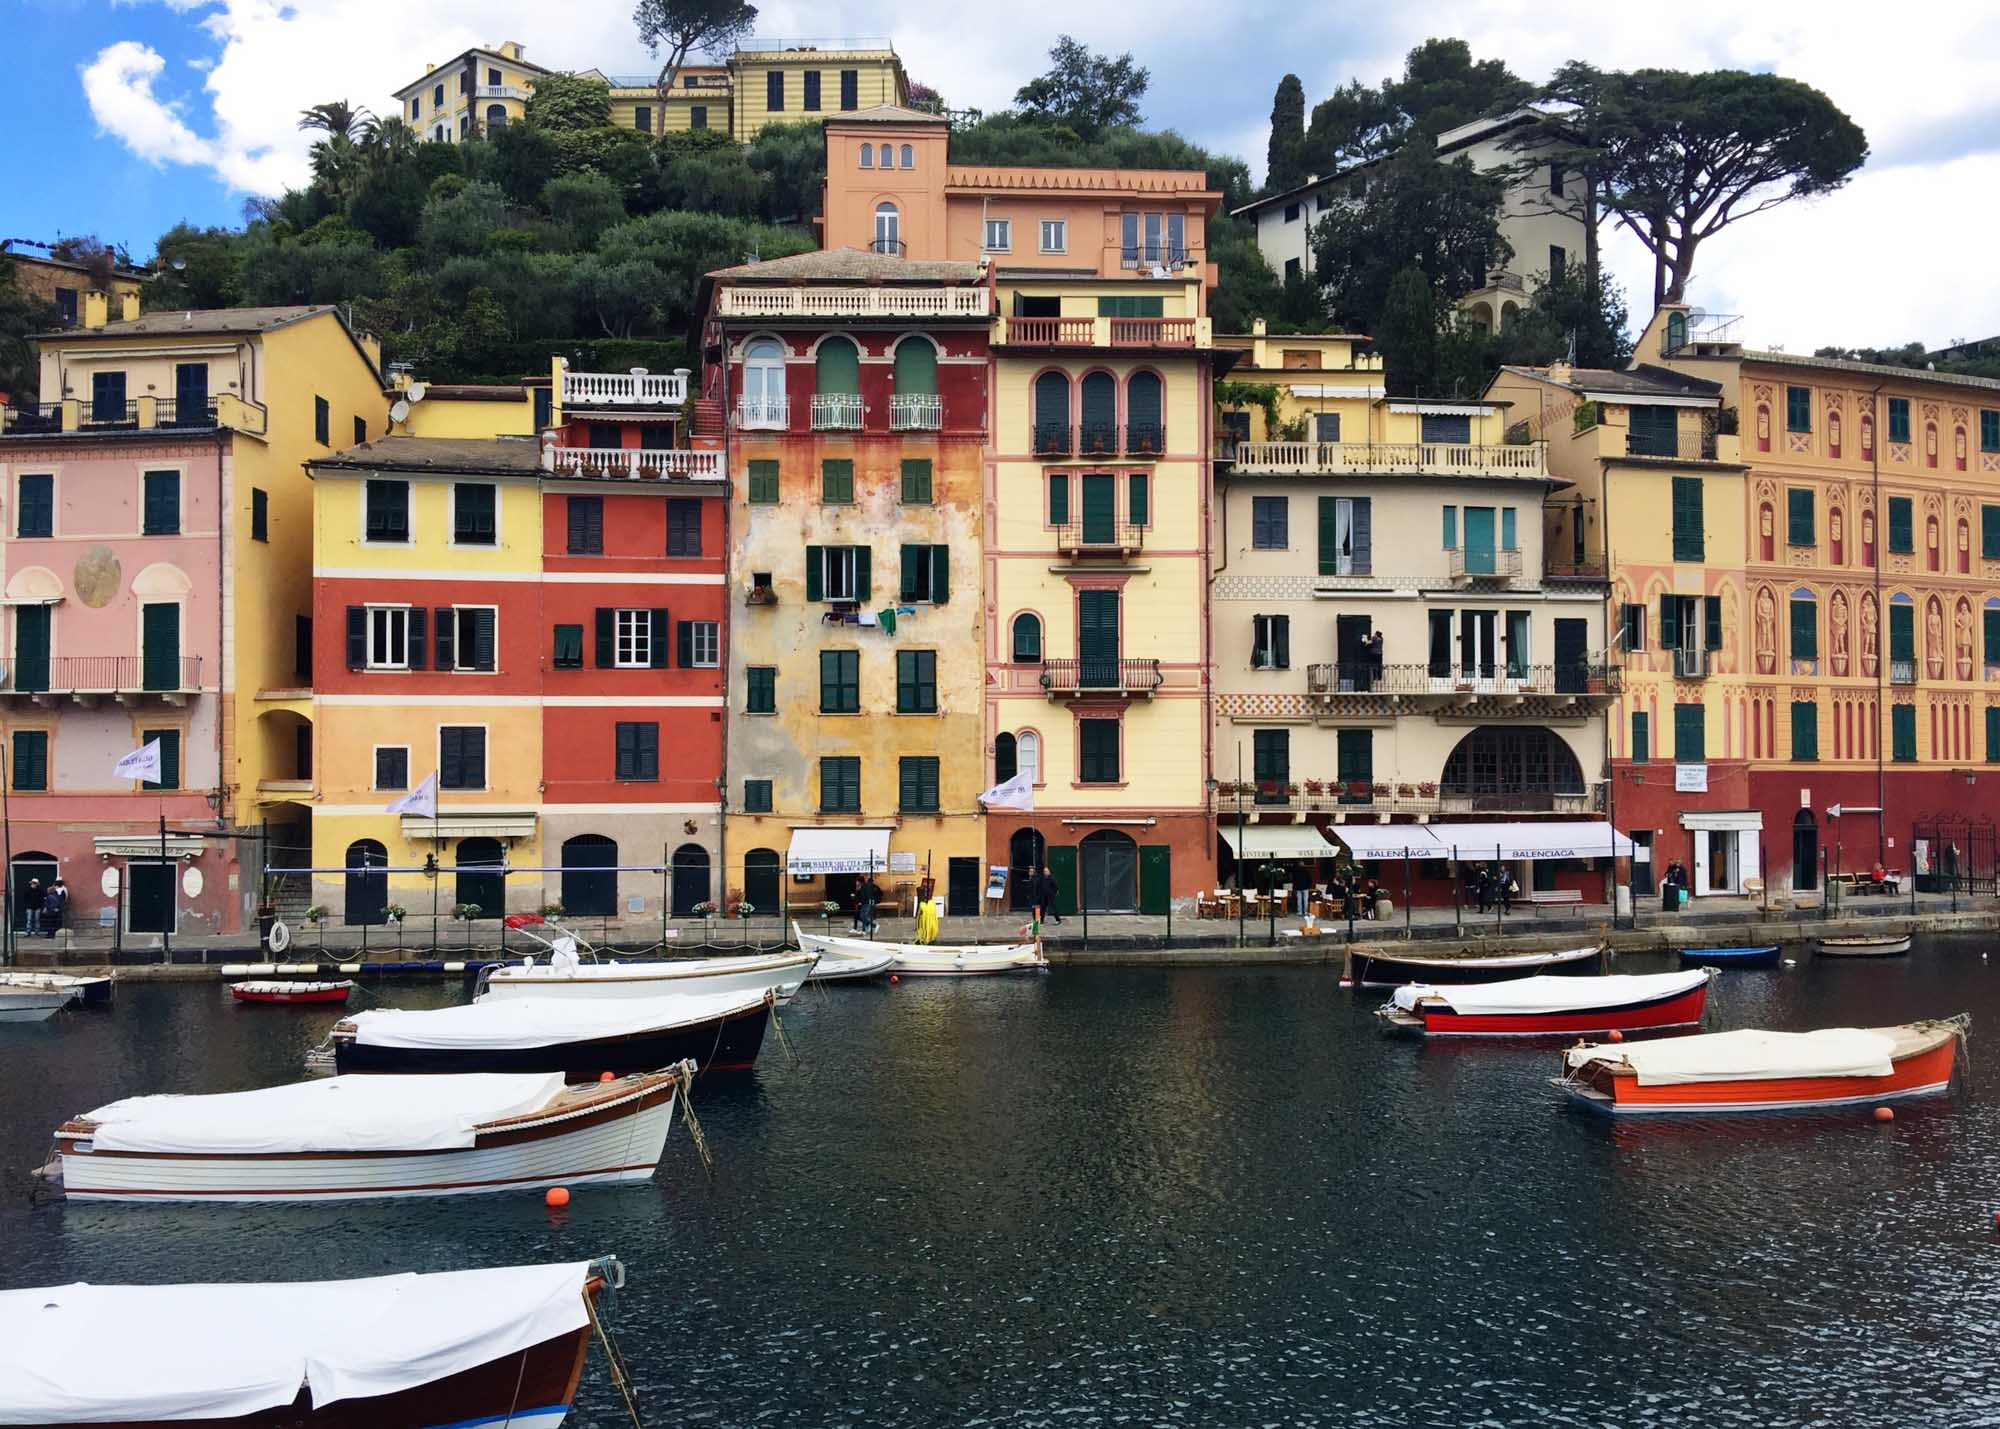 Colourful road trip in Europe: Portofino